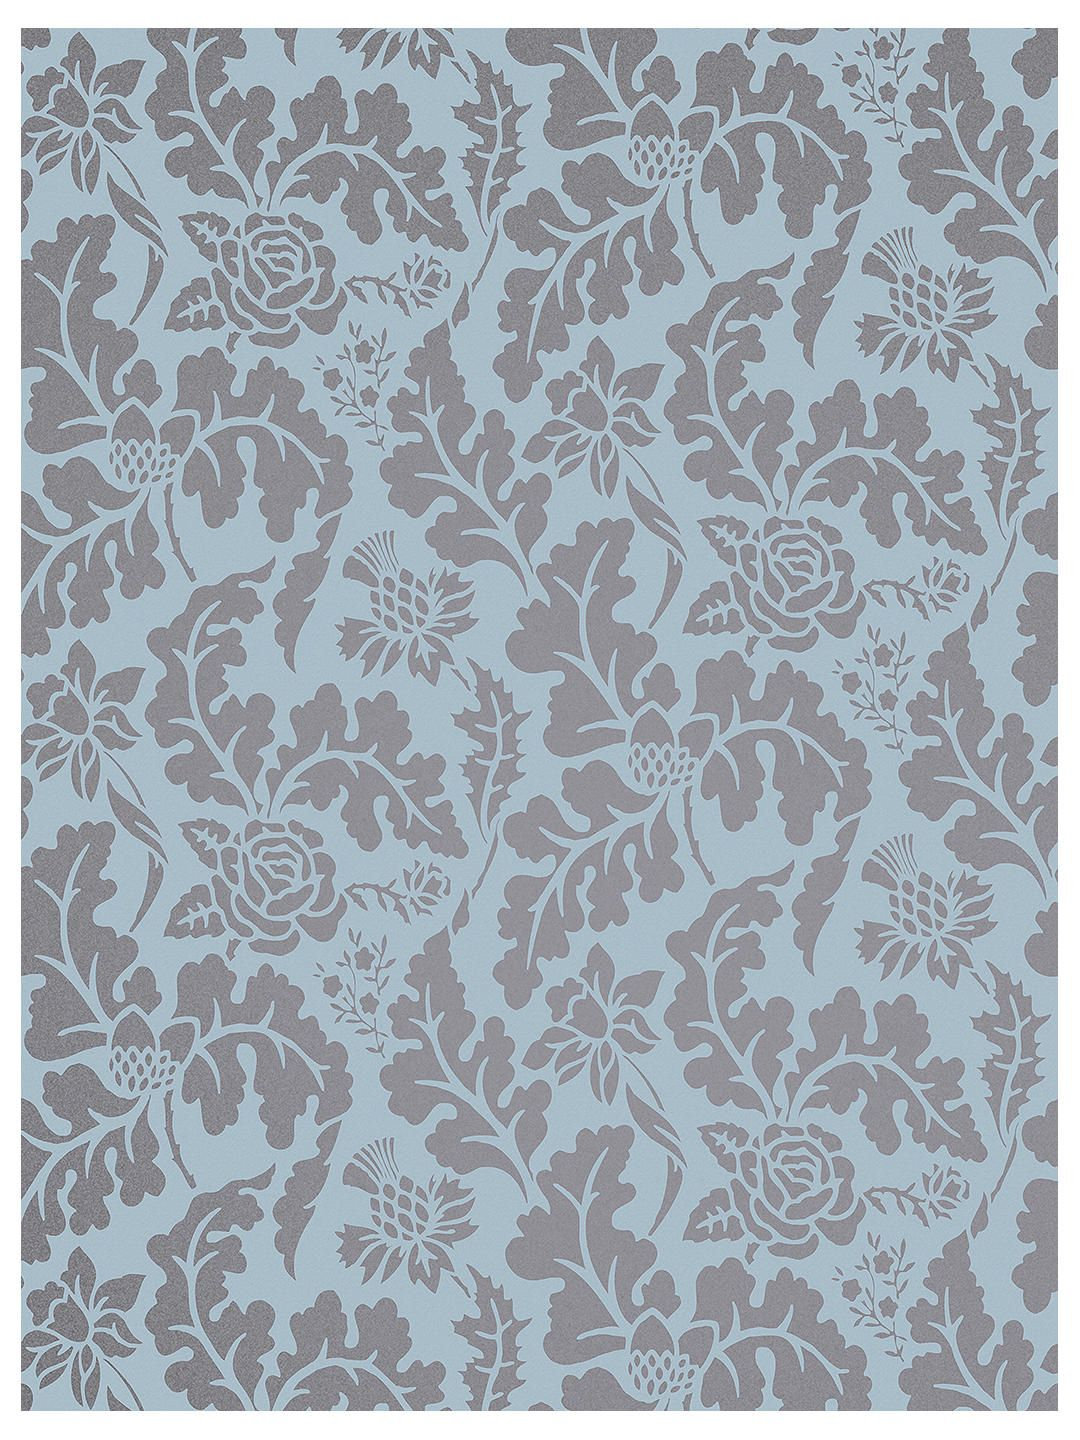 Osborne Little 50th Anniversary British Isles Damask Wallpaper 1080x1440